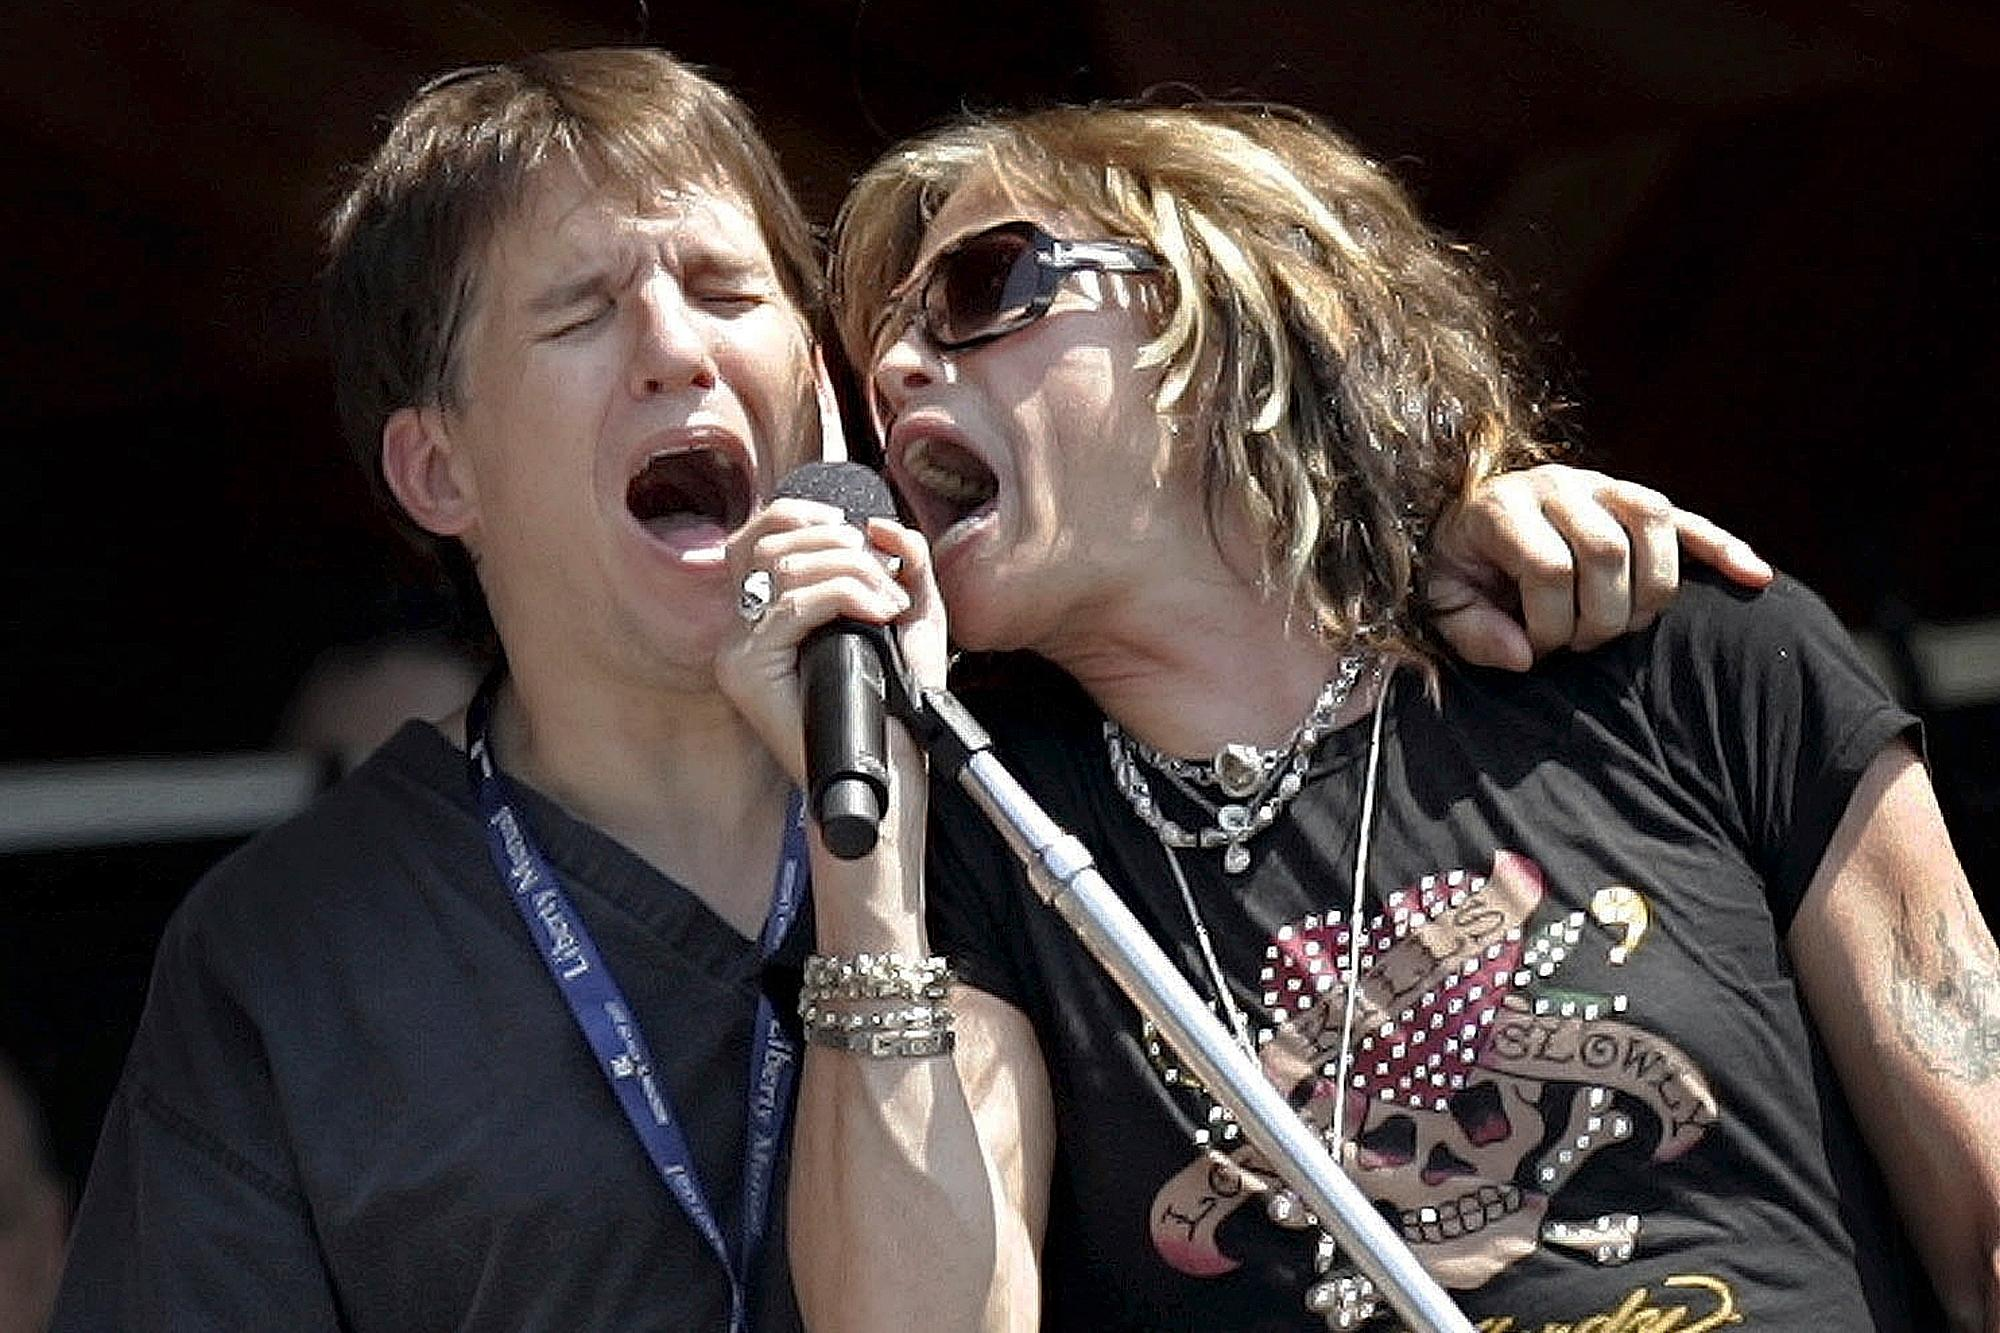 FILE - In this July 3, 2006 file photo, Boston Pops conductor Keith Lockhart, left, and Aerosmith's lead singer Steven Tyler sing together during a sound-check and rehearsal for the Fourth of July show at the Hatch Shell in Boston. Lockhart marks 25 years with the Boston Pops in 2020, making him the orchestra's second longest-tenured conductor after Arthur Fiedler. (AP Photo/Chitose Suzuki, File)